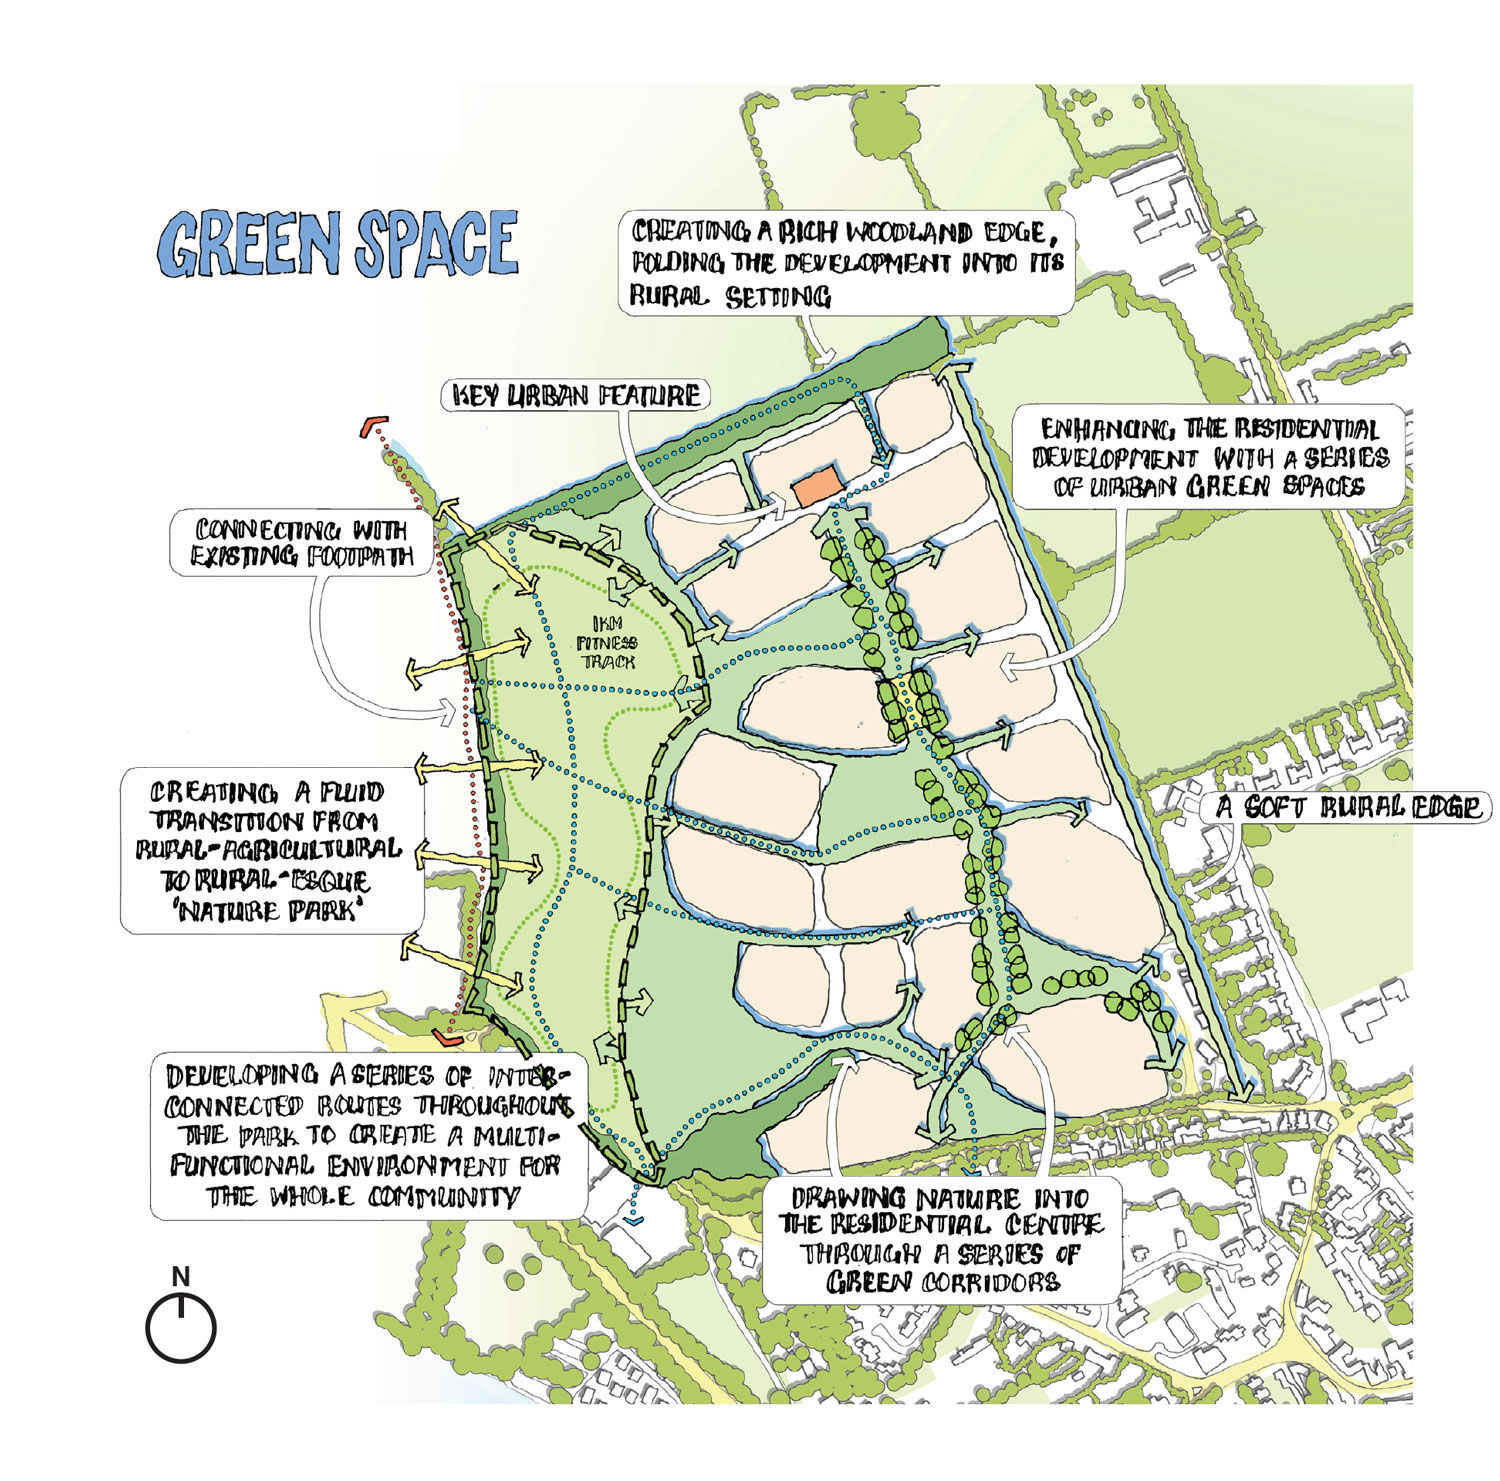 Affordable, Homes, New Homes, Oxfordshire, Planning permission